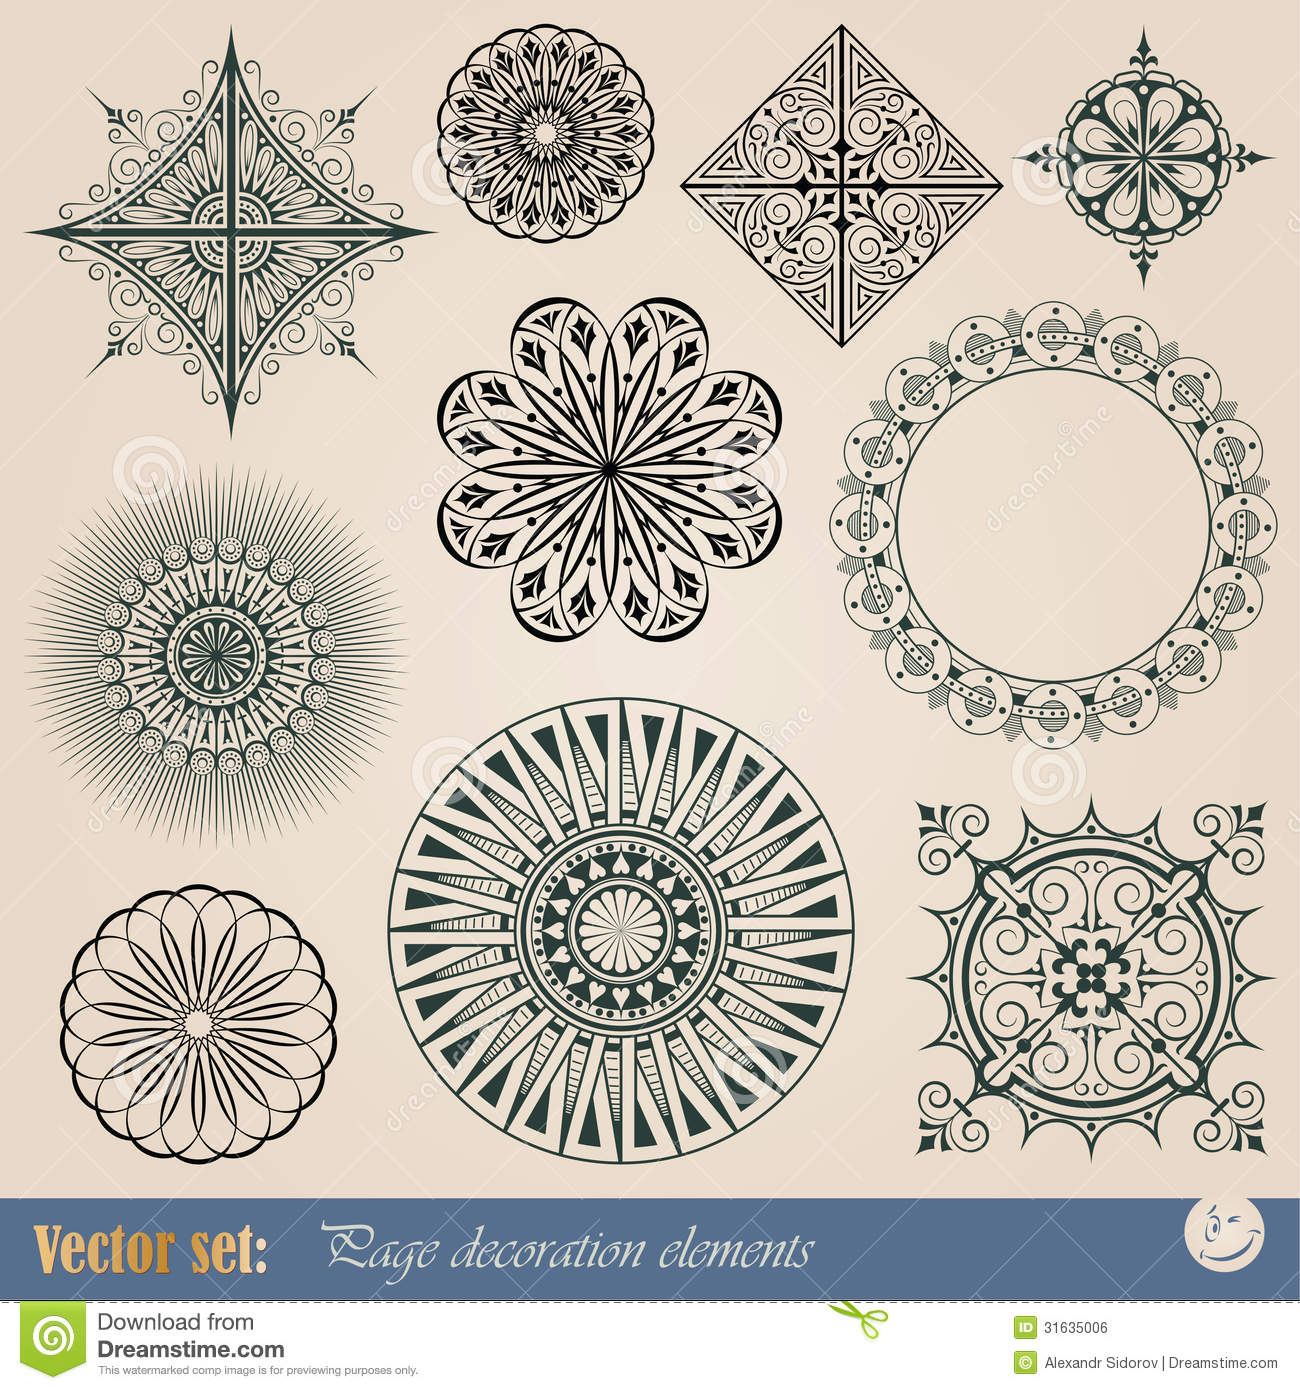 Vector decorative elements royalty free stock image for Decoration elements